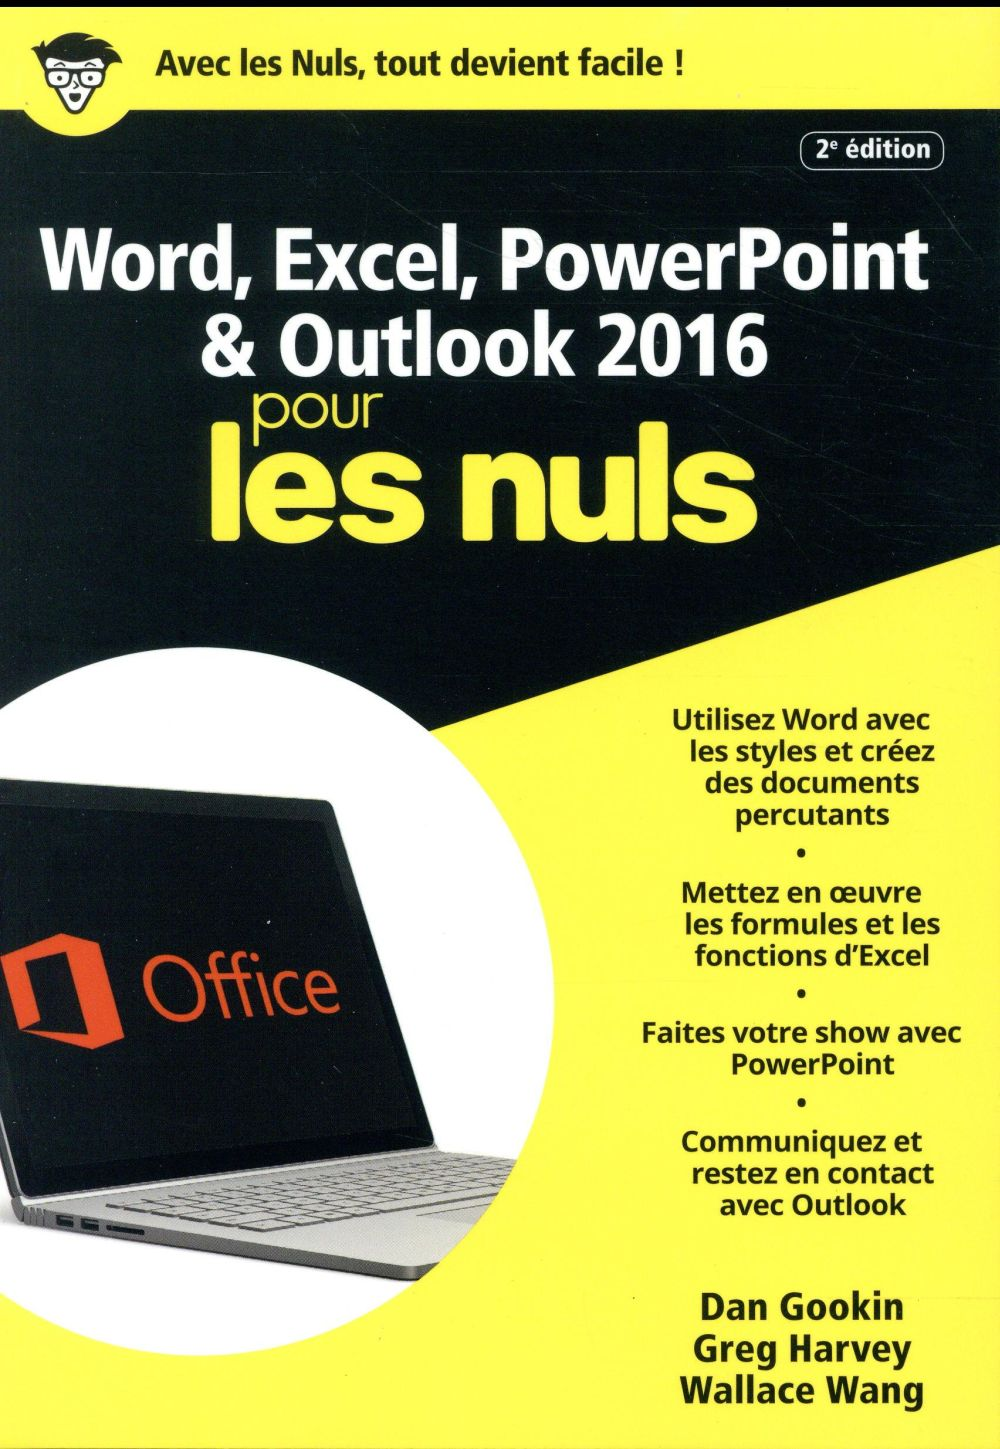 Word & Excel Powerpoint & Outlook 2016 (2e édition)